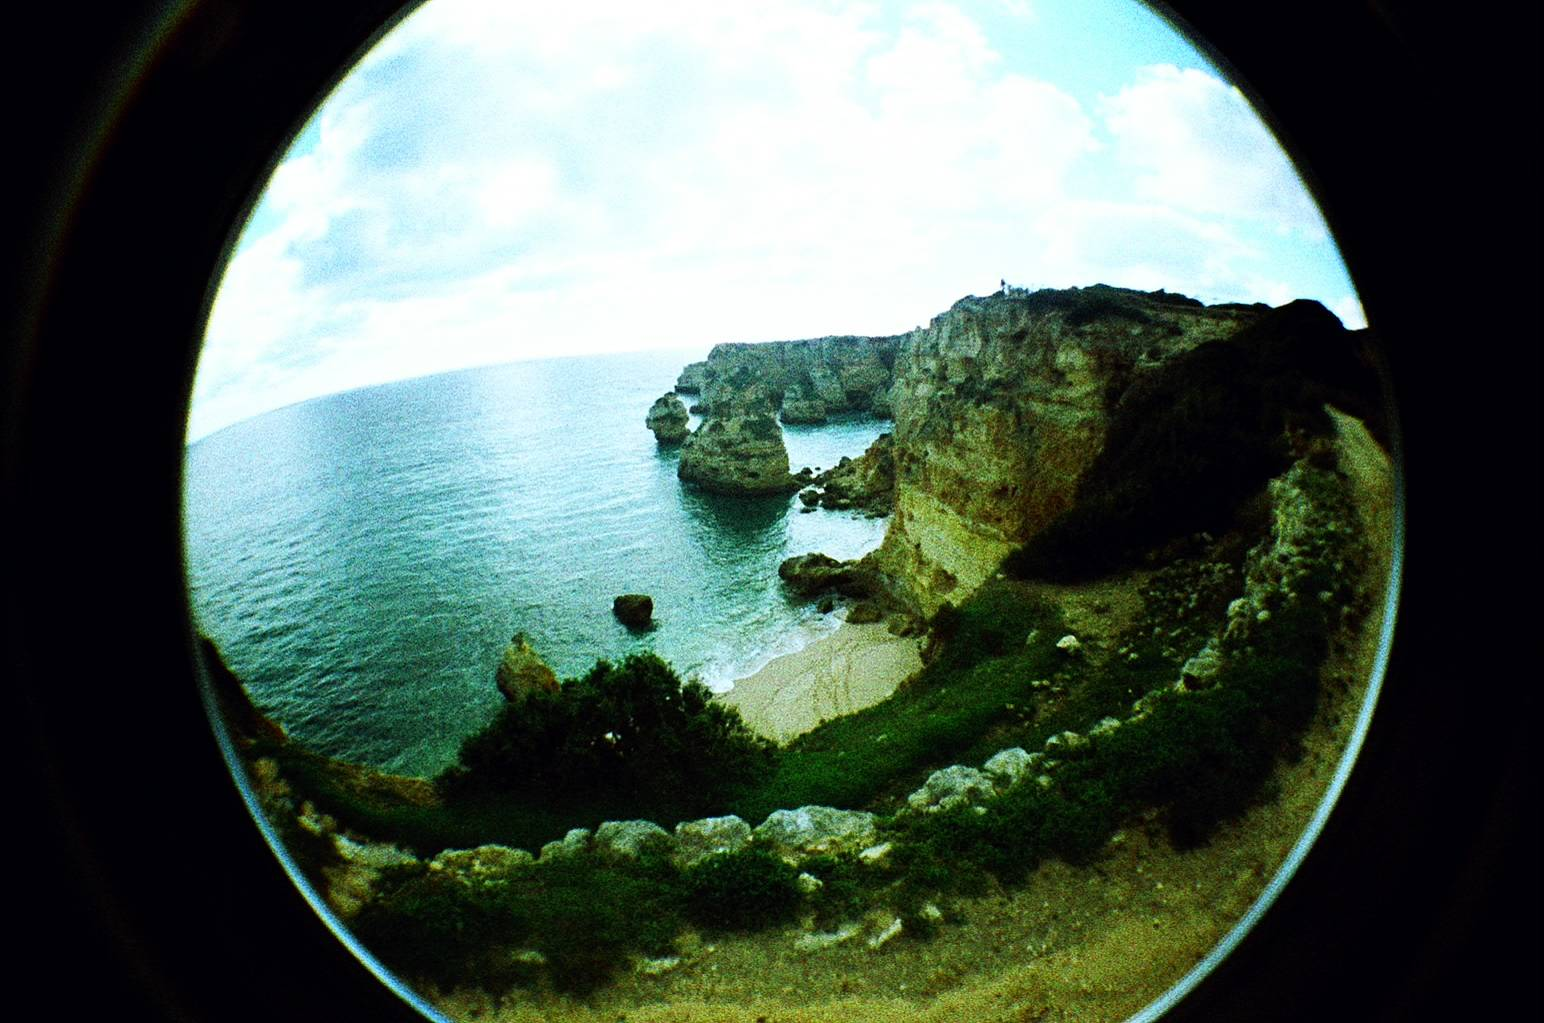 Playas de ensueño en Carvoeiro · Lomography